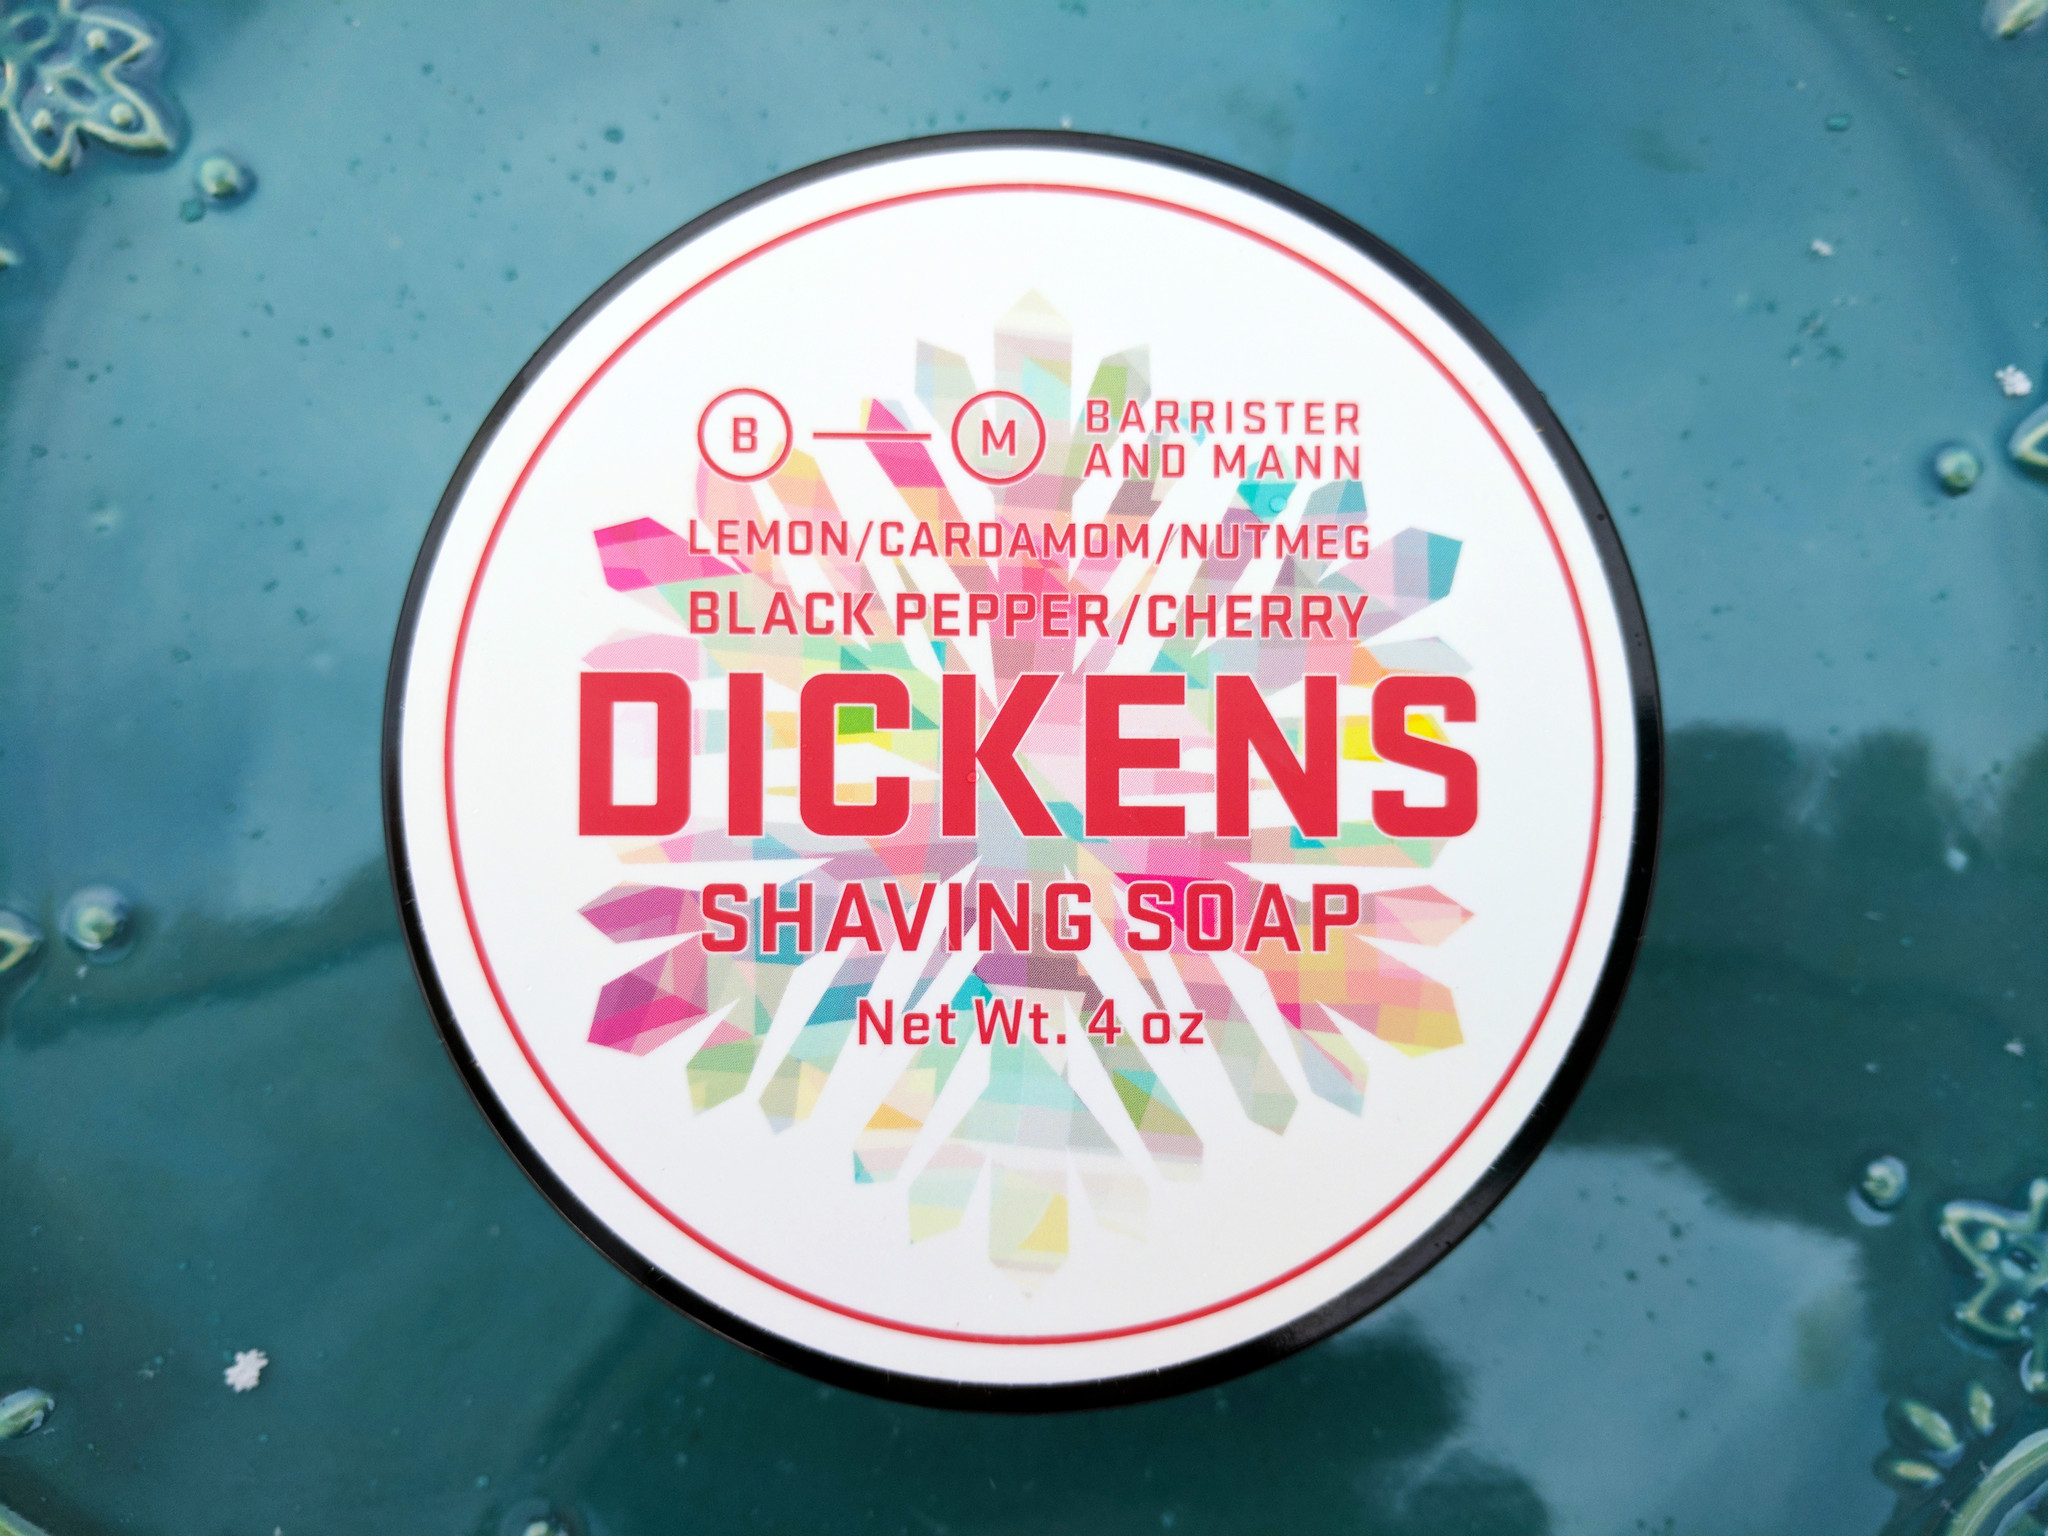 Barrister and Mann - Barrister and Mann - Dickens - Soap image